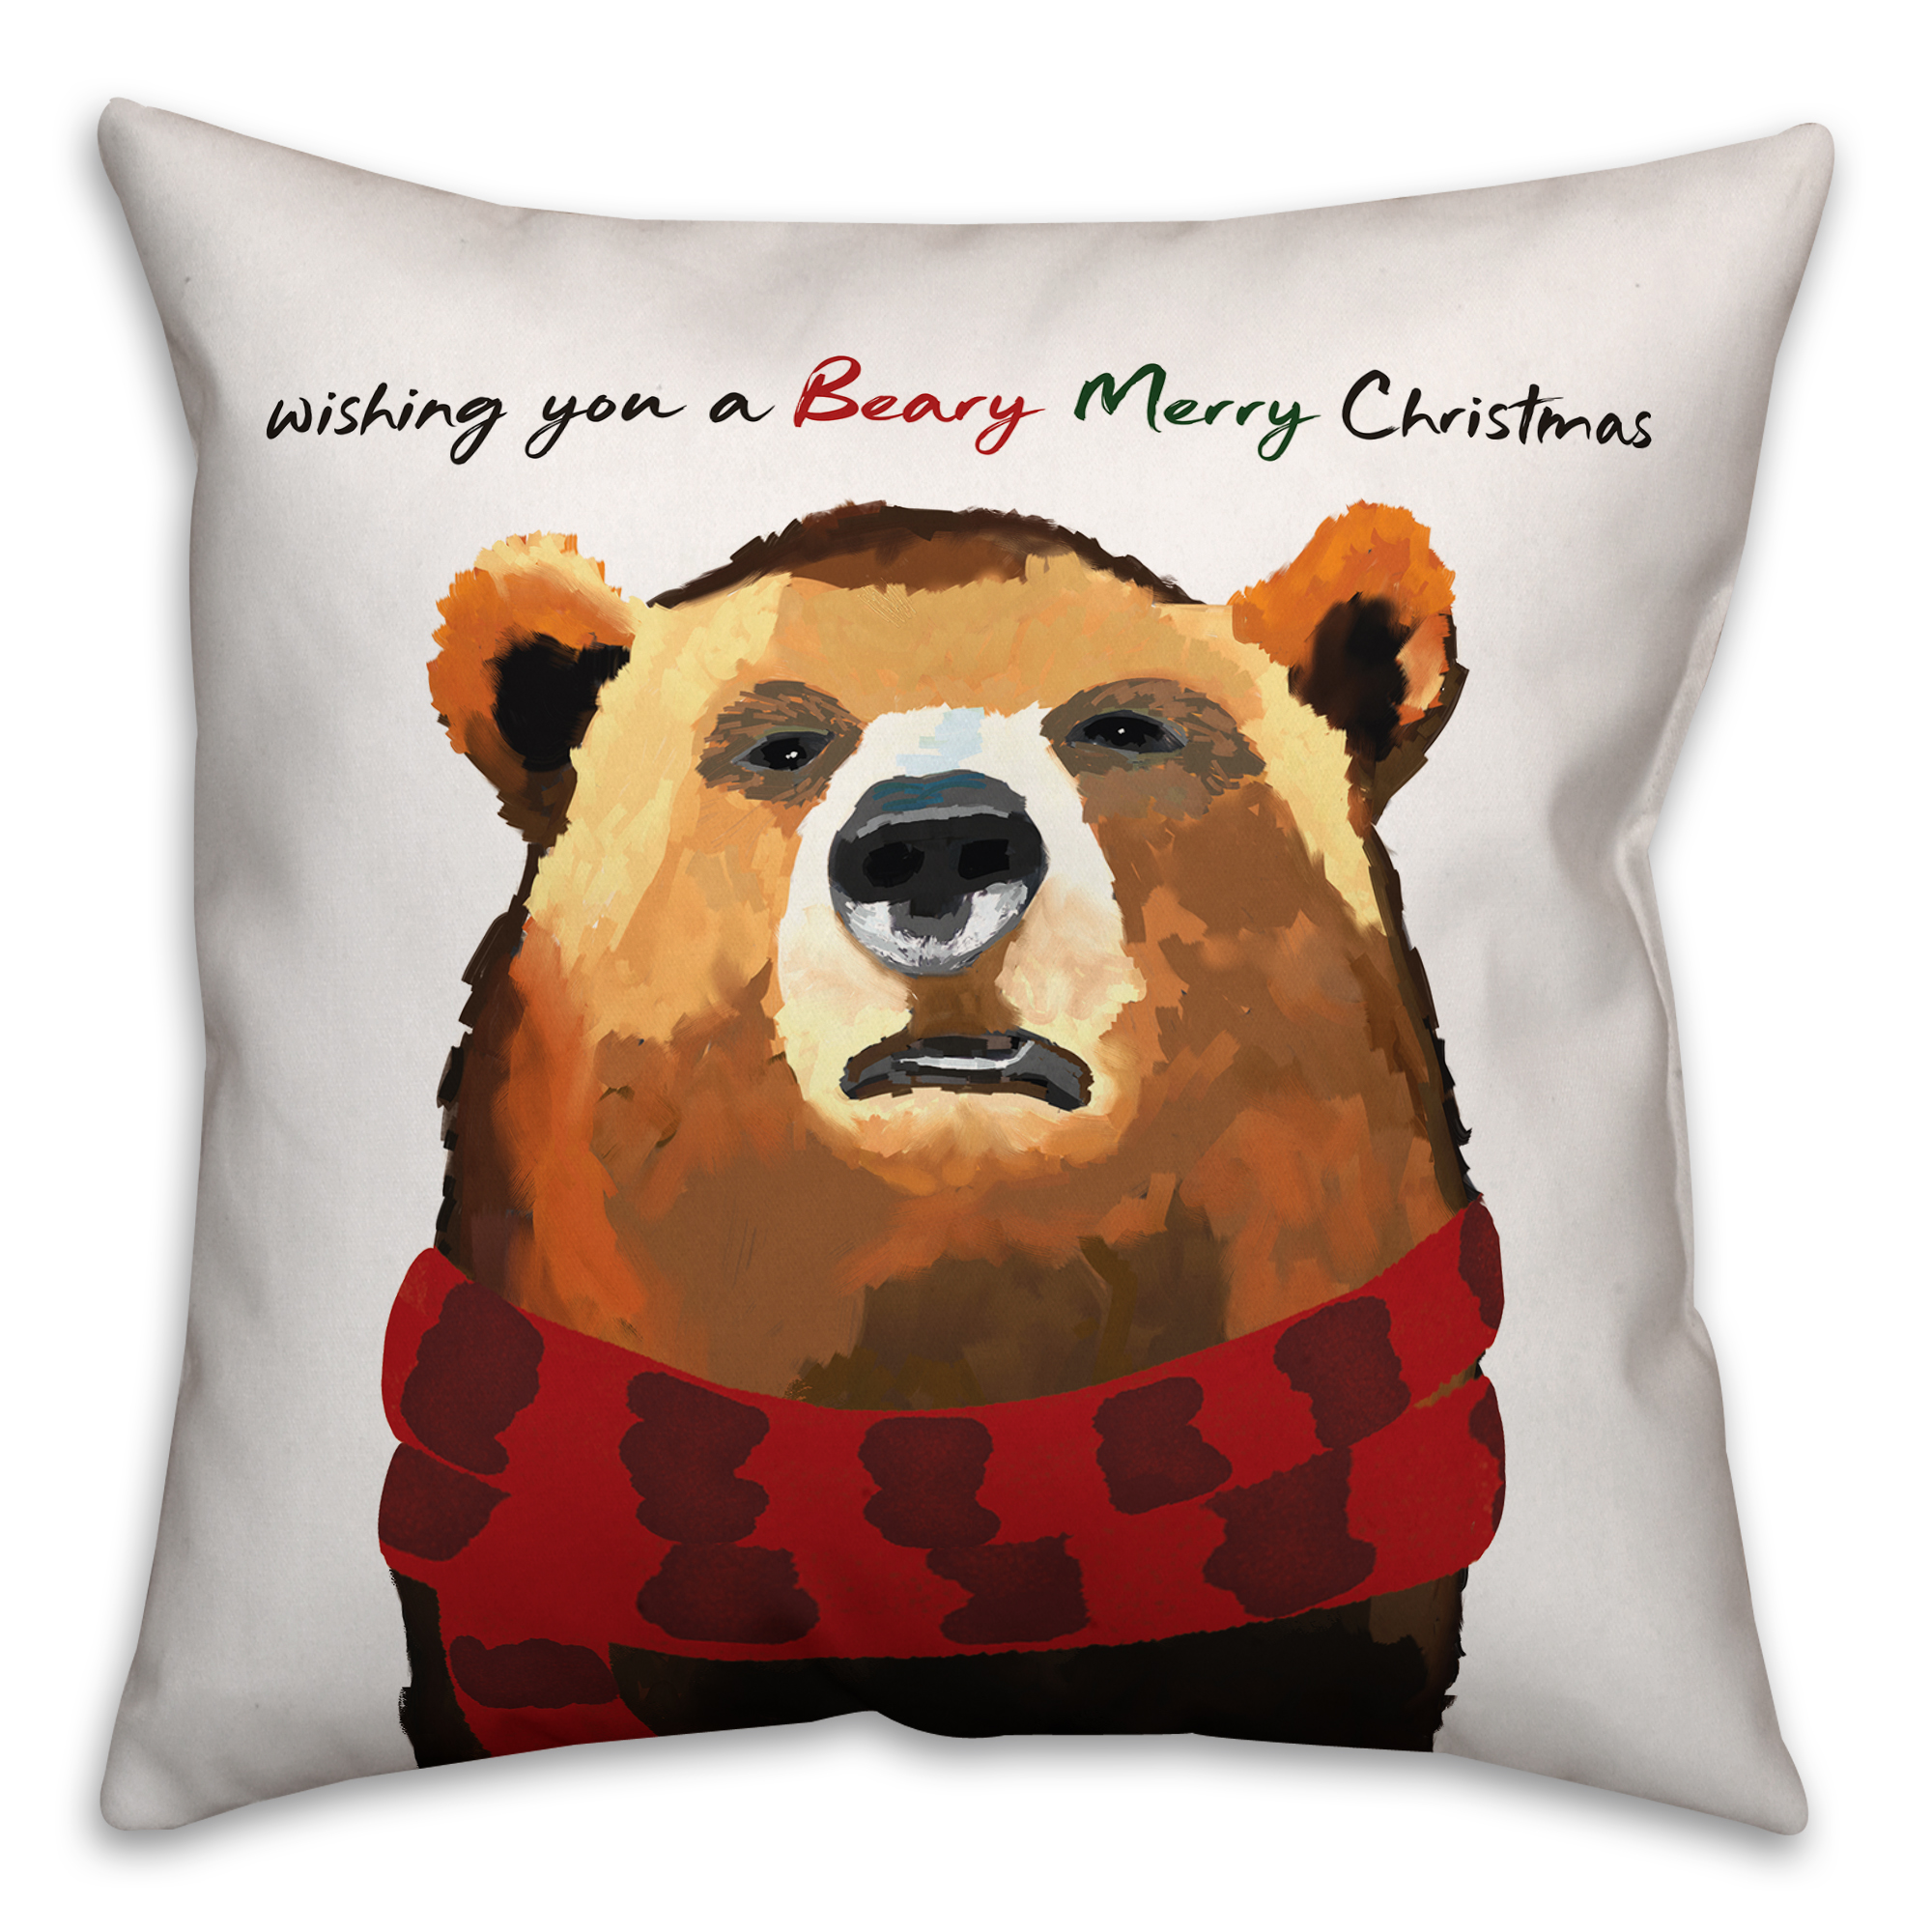 Beary Merry Christmas 16x16 Spun Poly Pillow Cover